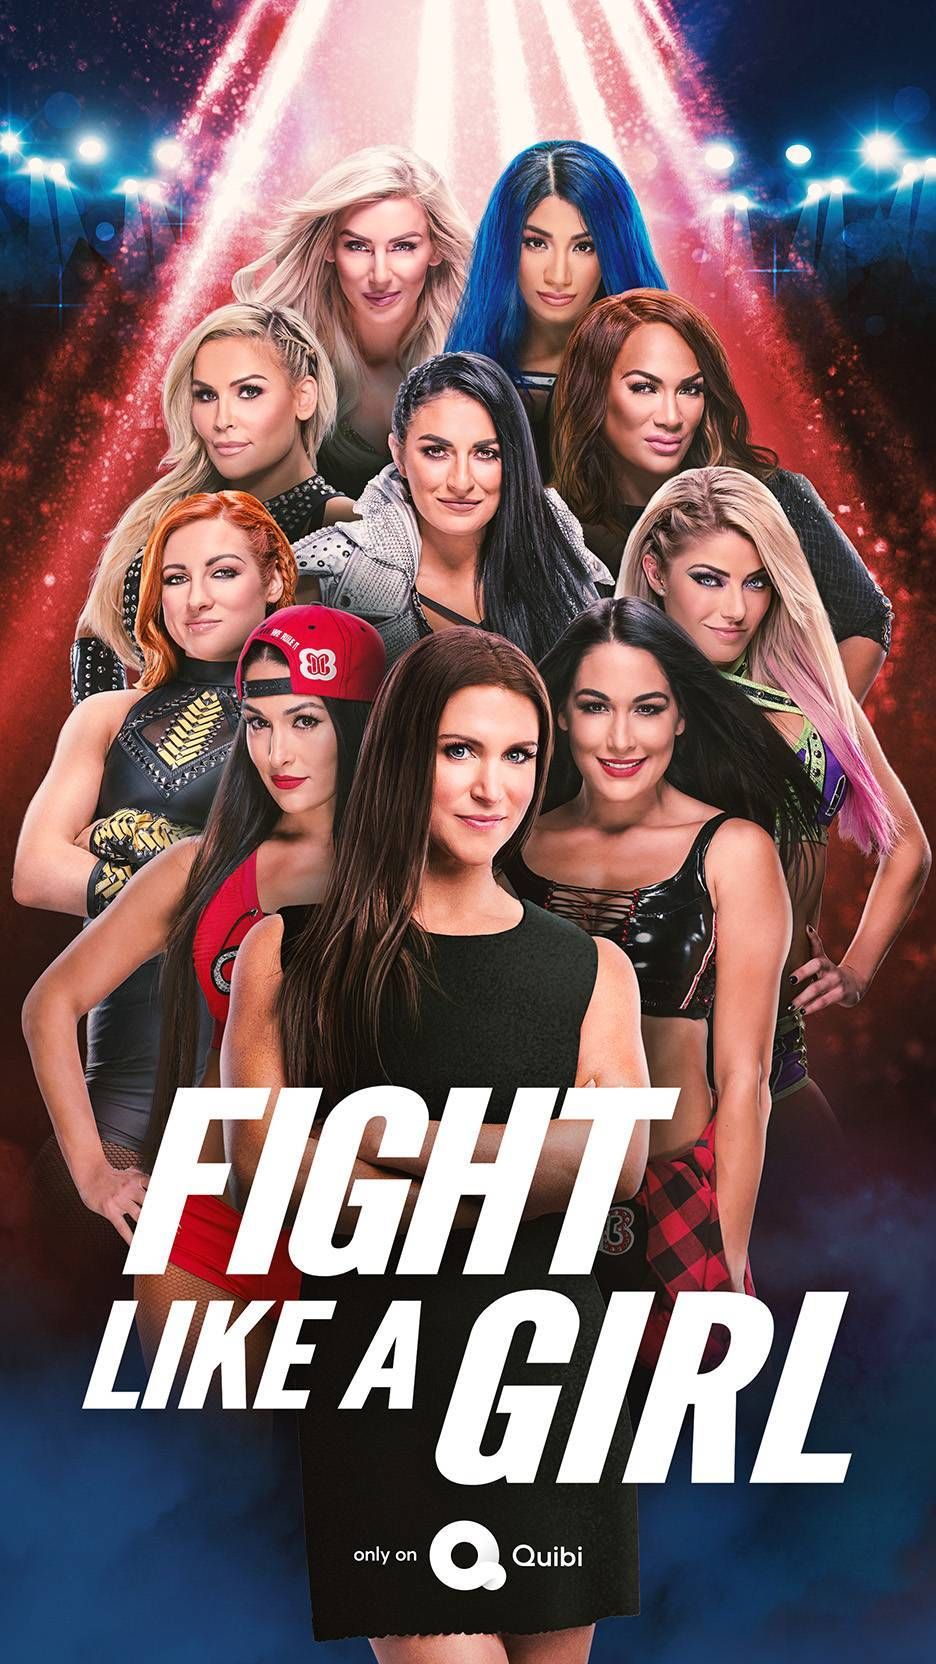 WWE-Quibi-Fight-Like-A-Girl-Poster